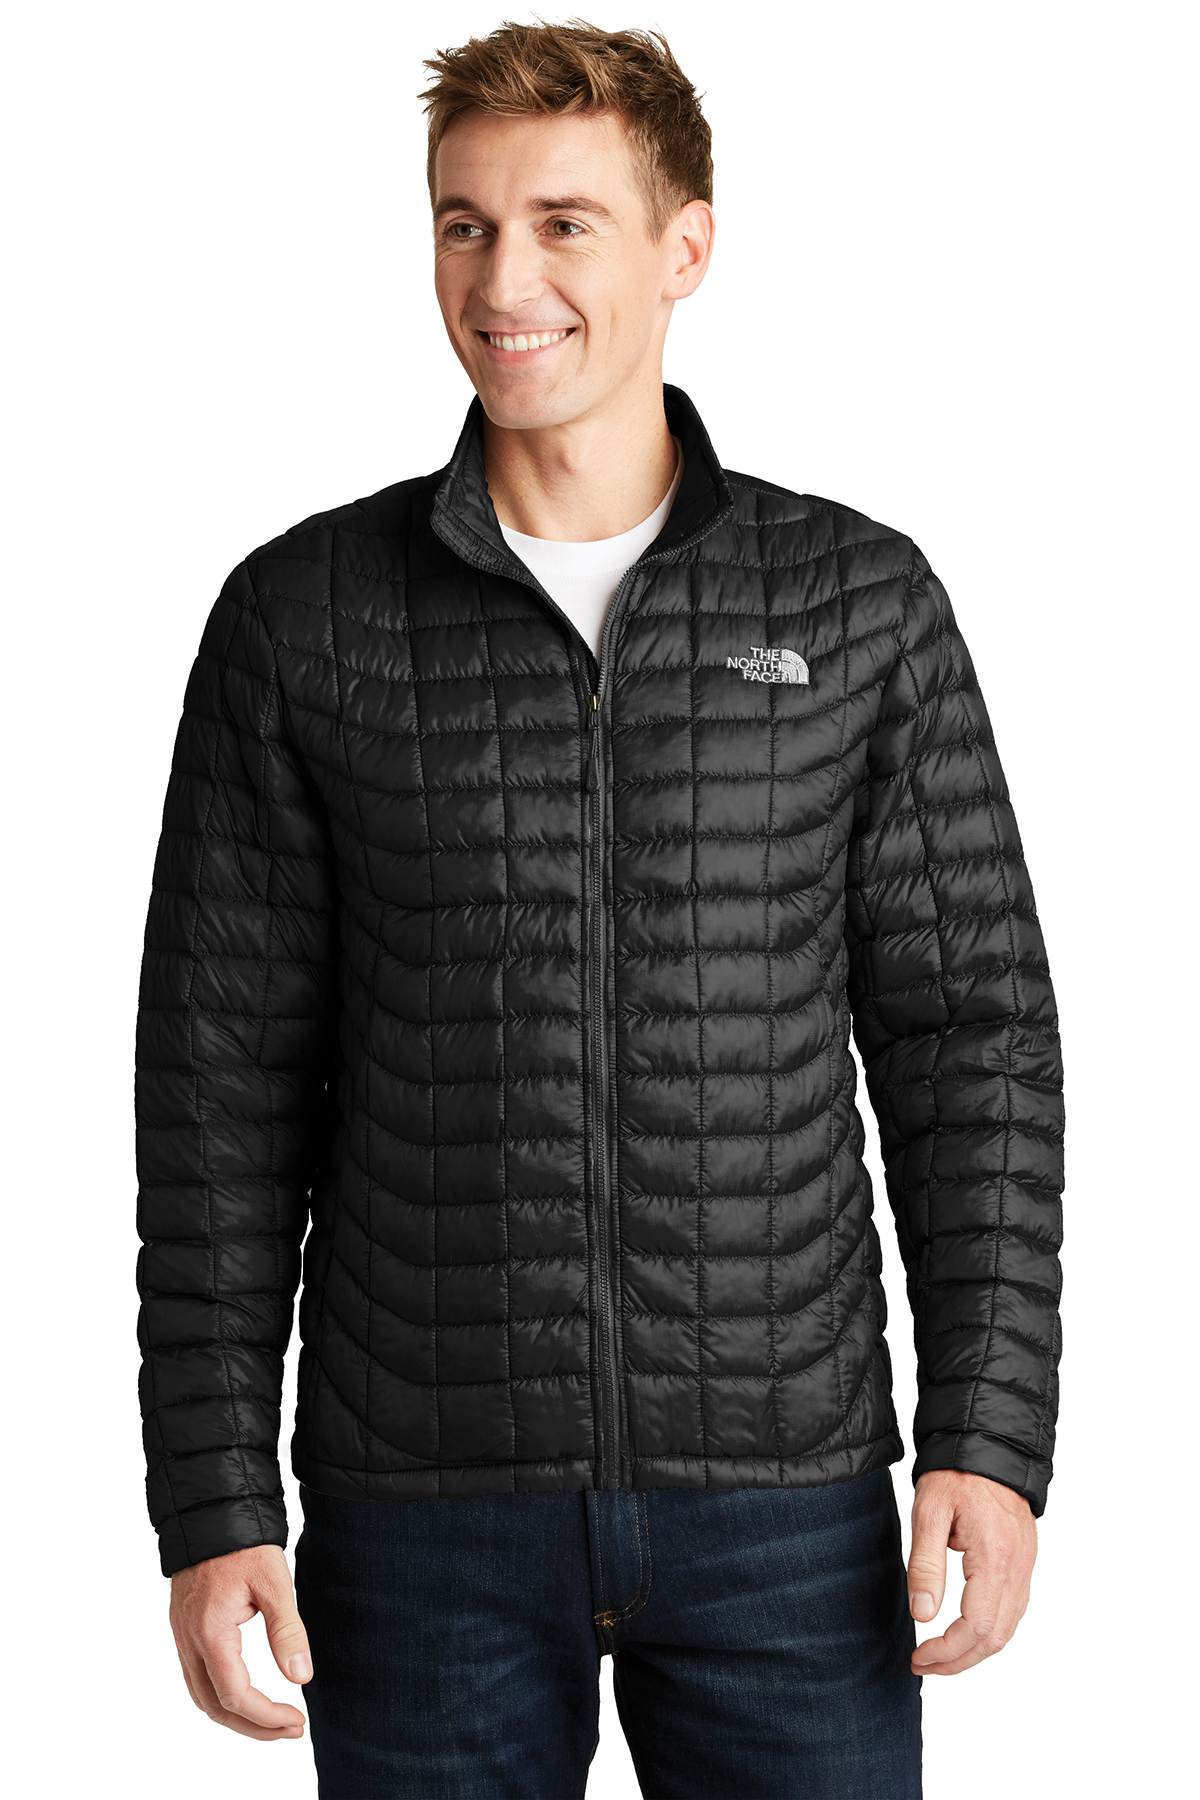 The North Face® NF0A3LH2 - Men's ThermoBall™ Trekker Jacket